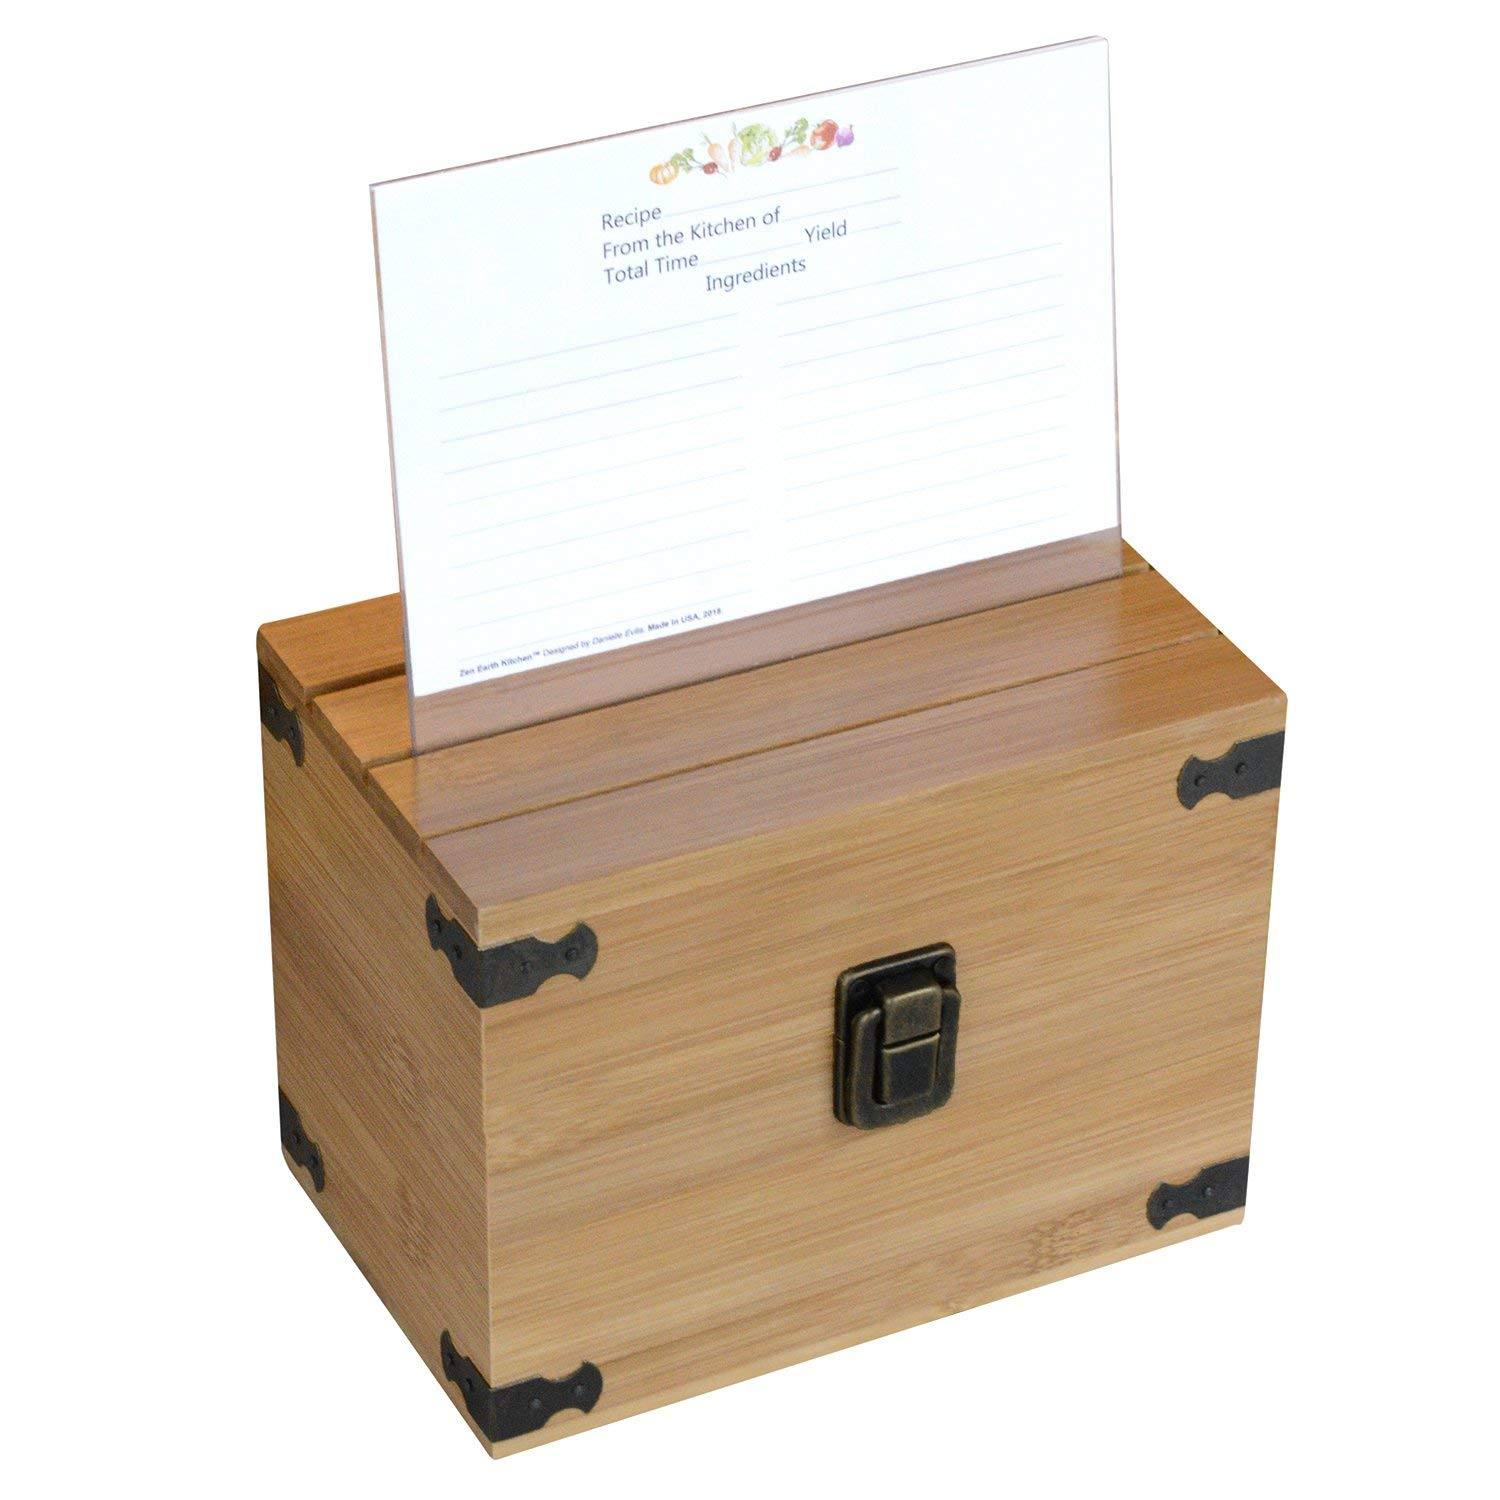 """Zen Earth Premium Kitchen Recipe Box -Luxury Handcrafted Bamboo Wood Recipe Case With Card Holder Grooves -Great For 200+ 4x6"""" Recipe & Index Cards -50 Recipe Cards & 1 Clear Card Frame Included!"""